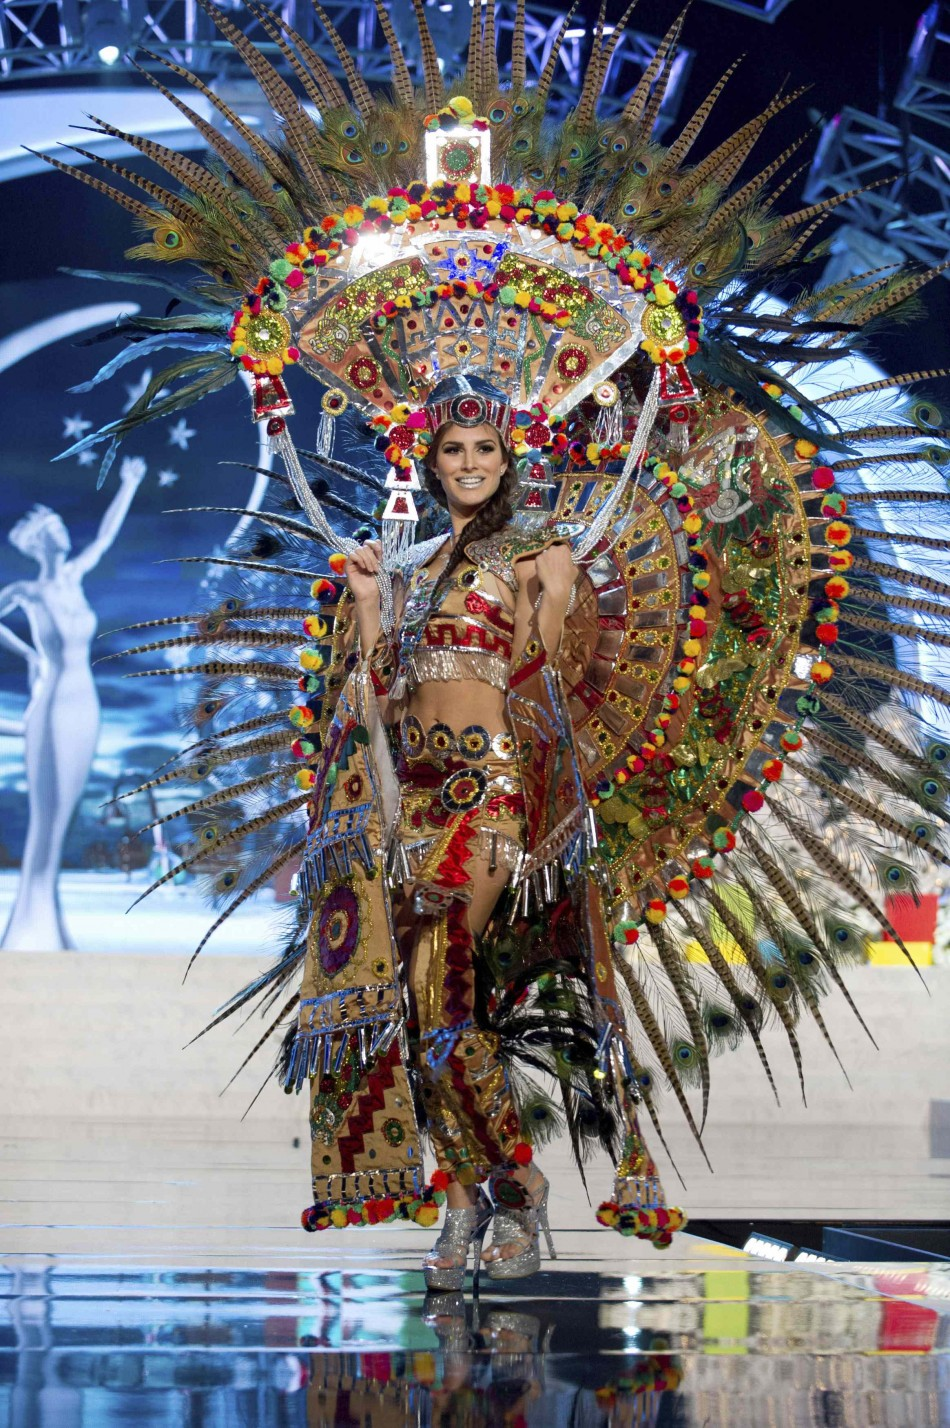 Miss Mexico Karina Gonzalez on stage at the 2012 Miss Universe National Costume Show at PH Live in Las Vegas